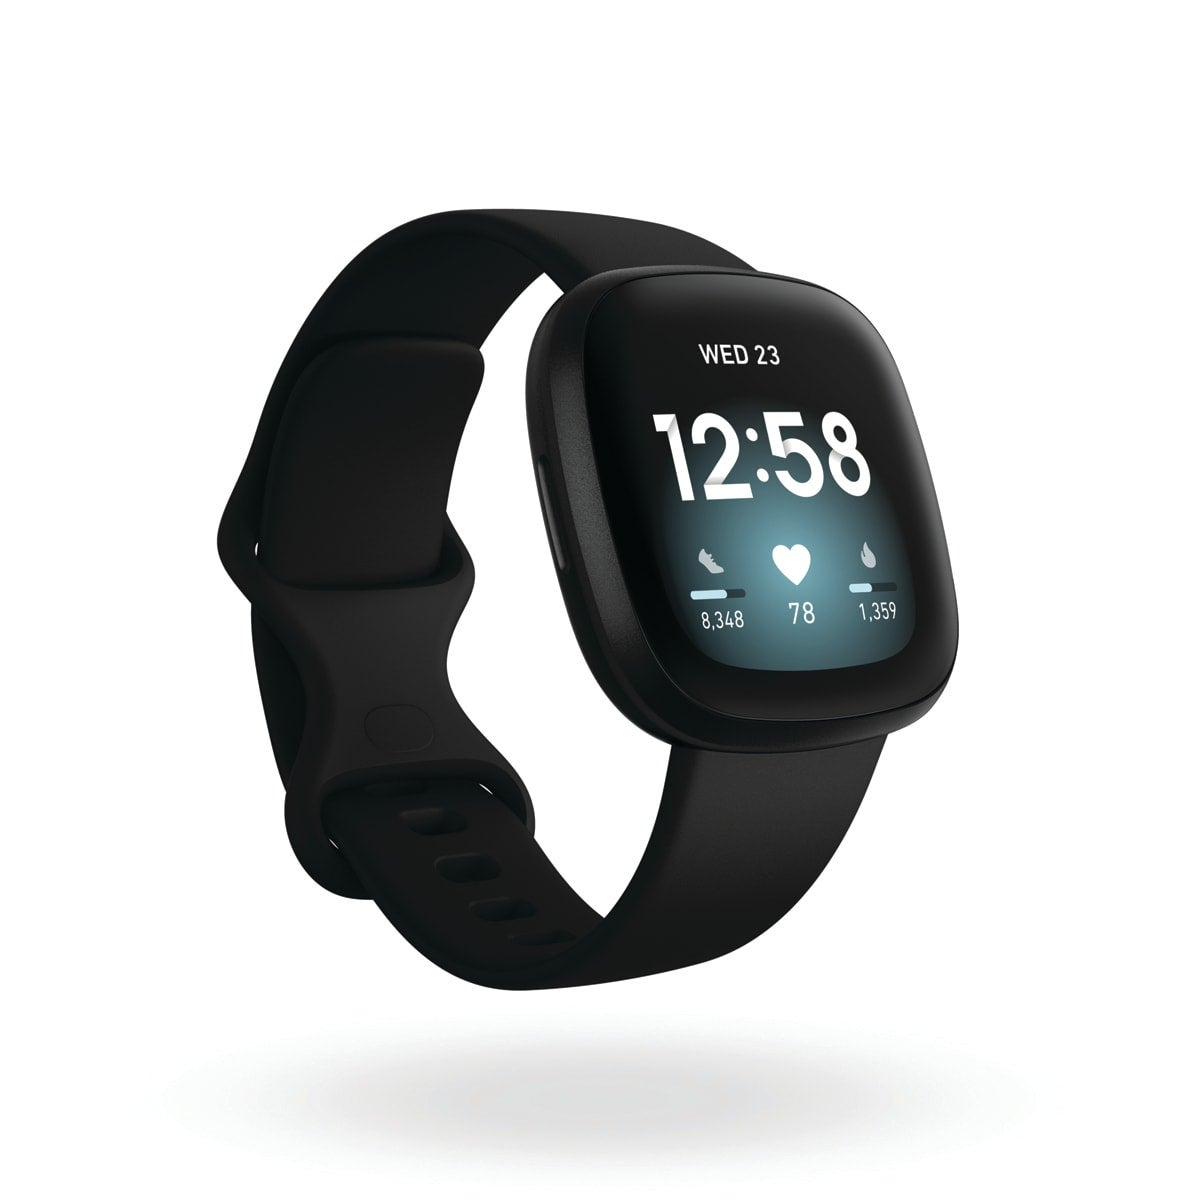 Fitbit Versa 3, colour black, Amazon Alexa built-in, calls from your wrist, built-in GPS, real-time pace and distance, 20+ goal-based exercise modes + SmartTrack